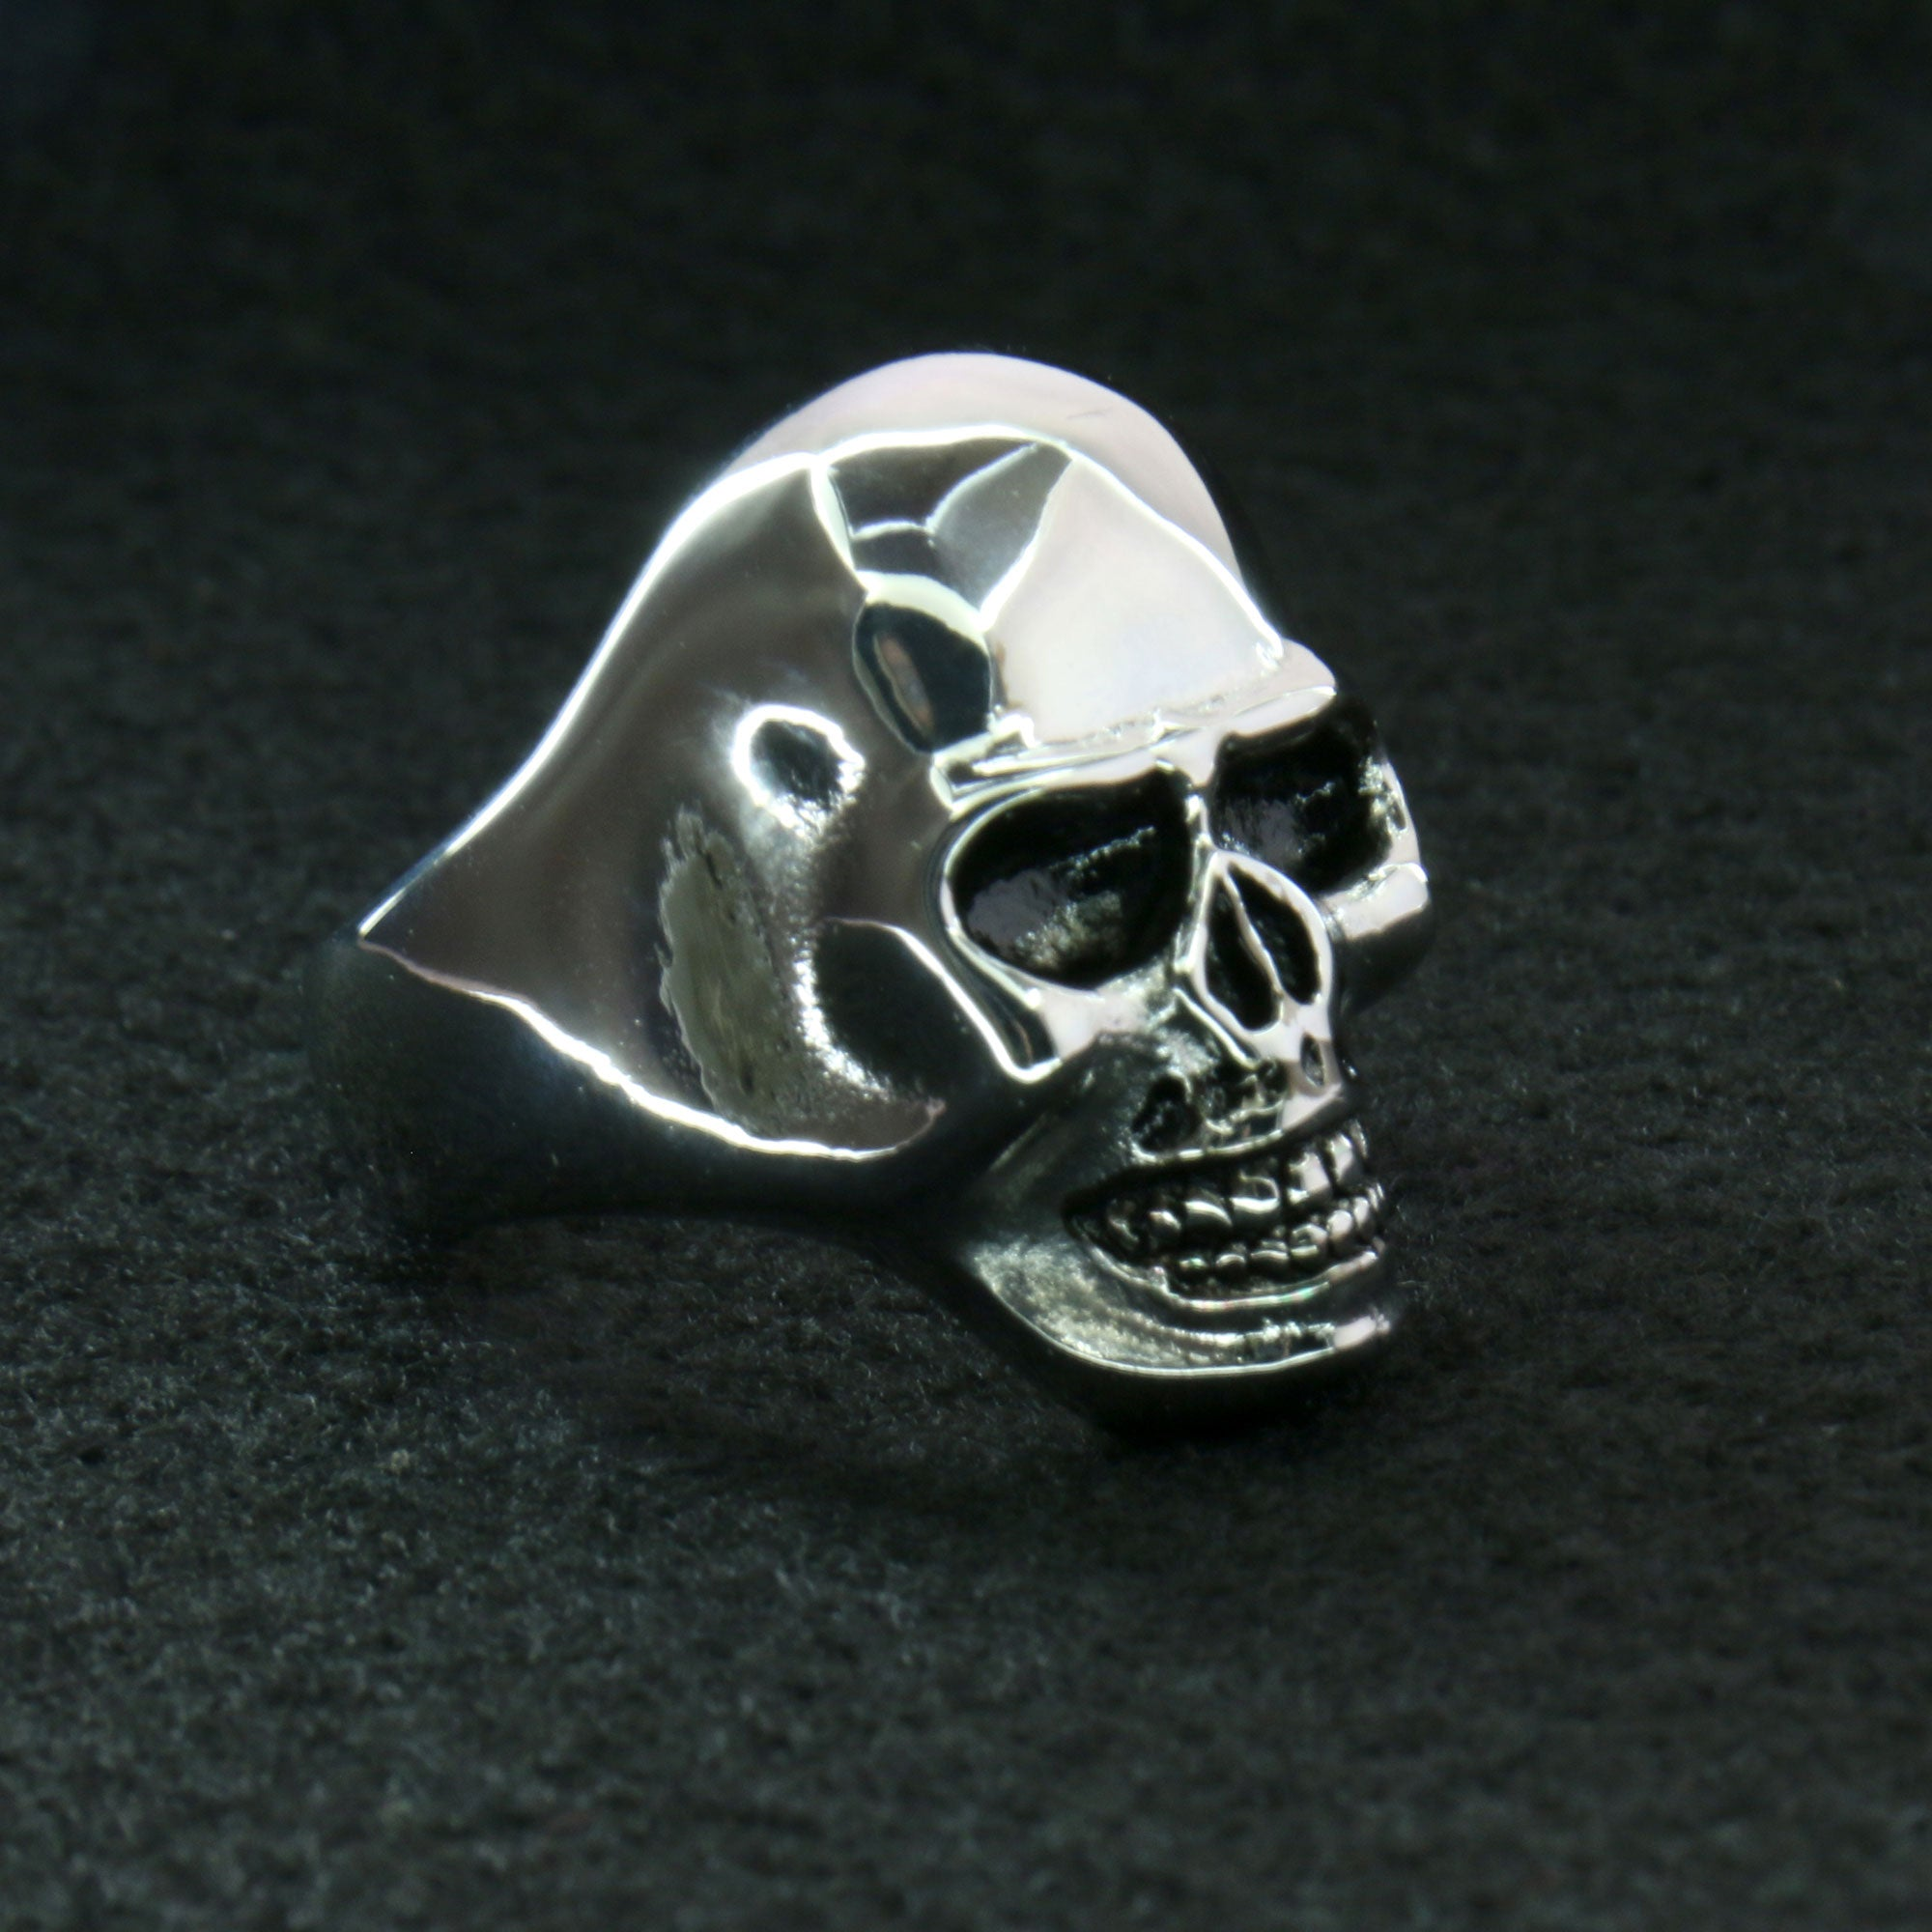 Hot Leathers Smooth Skull Ring